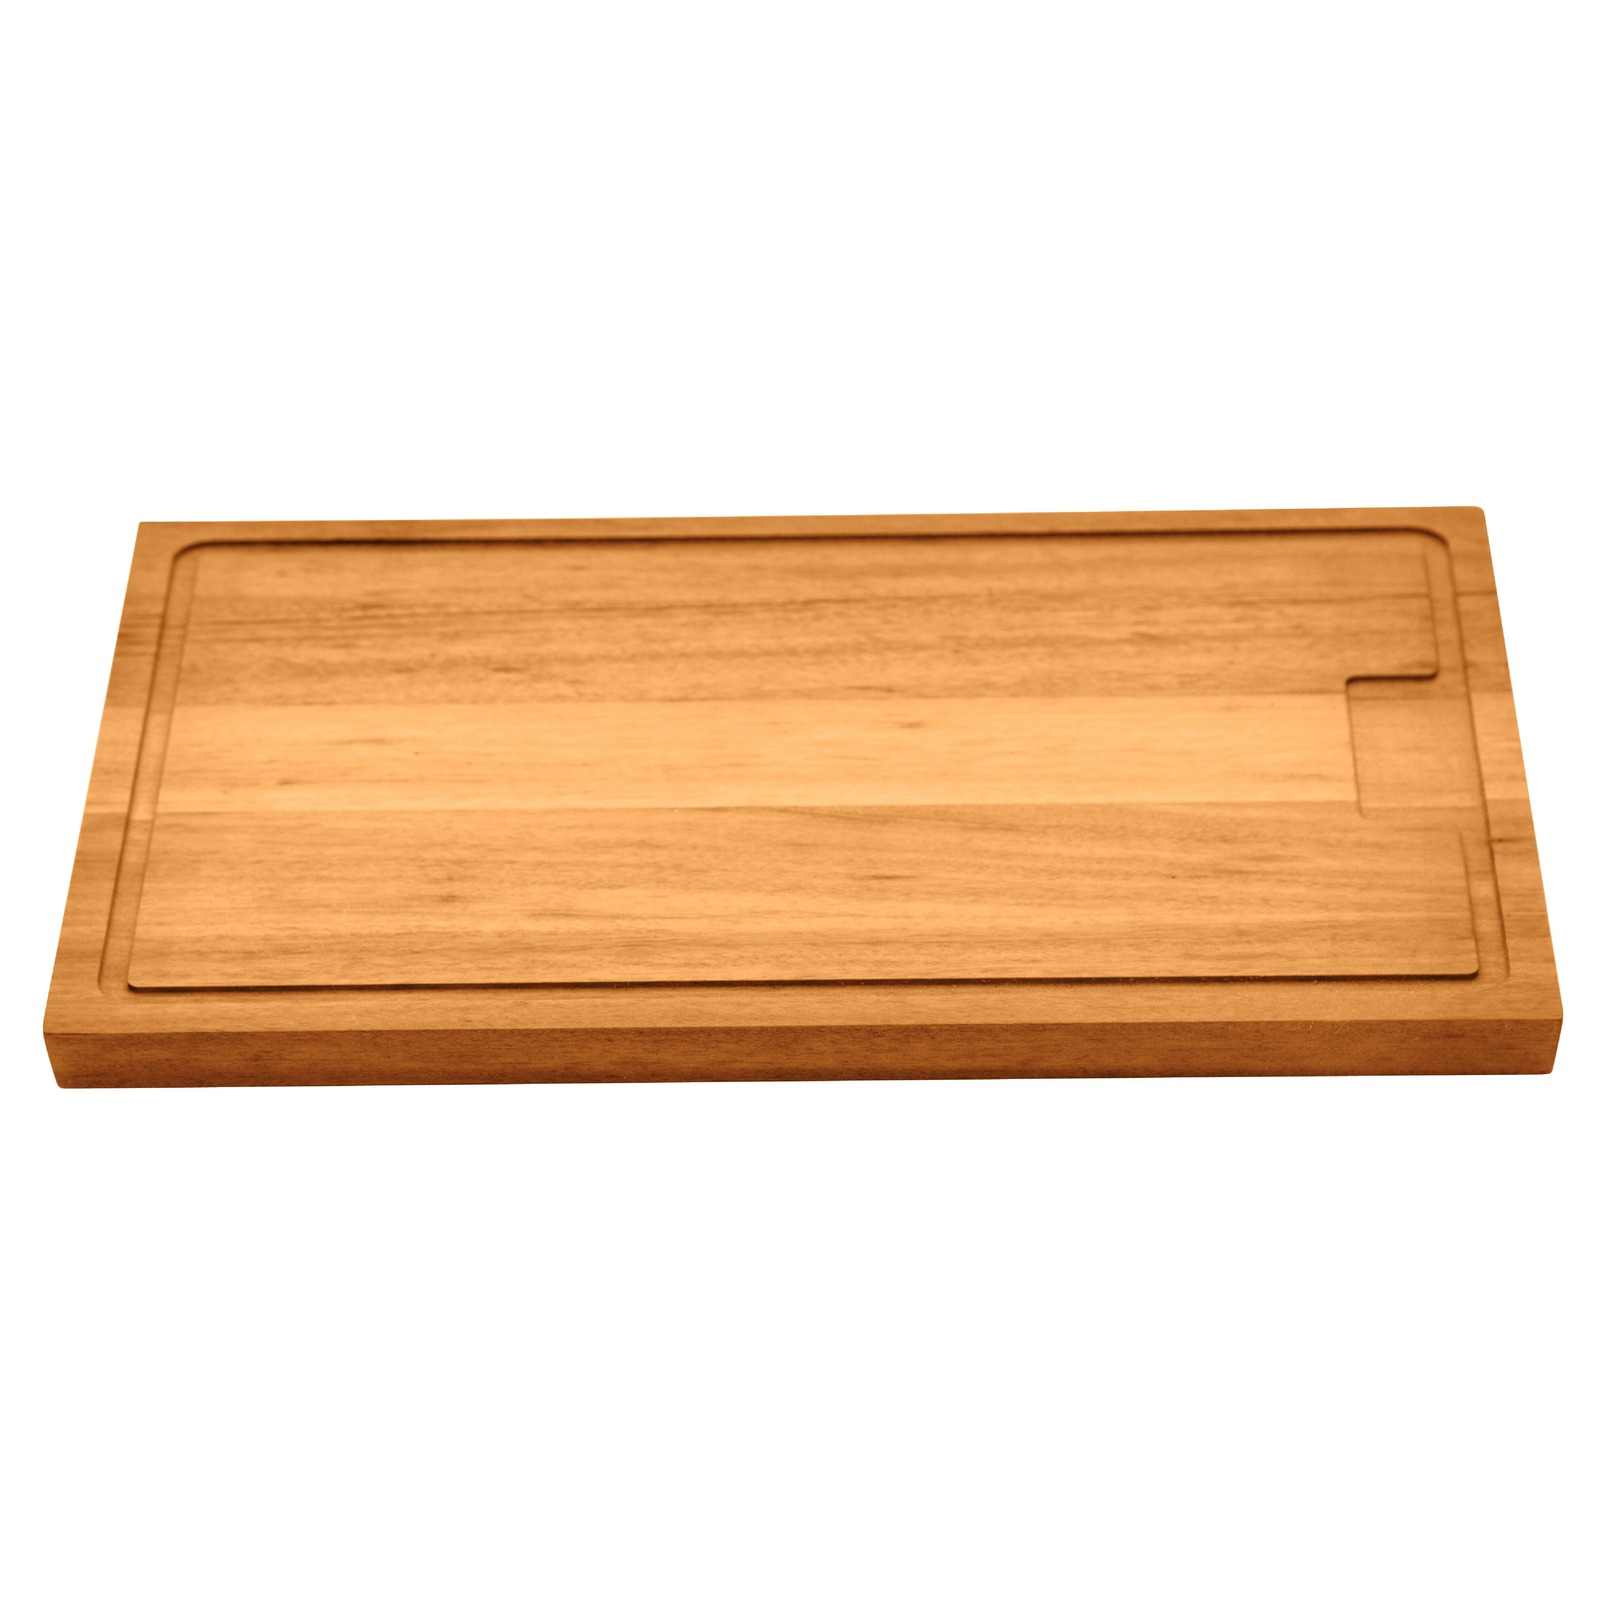 Tramontina Cutting and serving board L35.0 x W23.0 x H1.5 cm